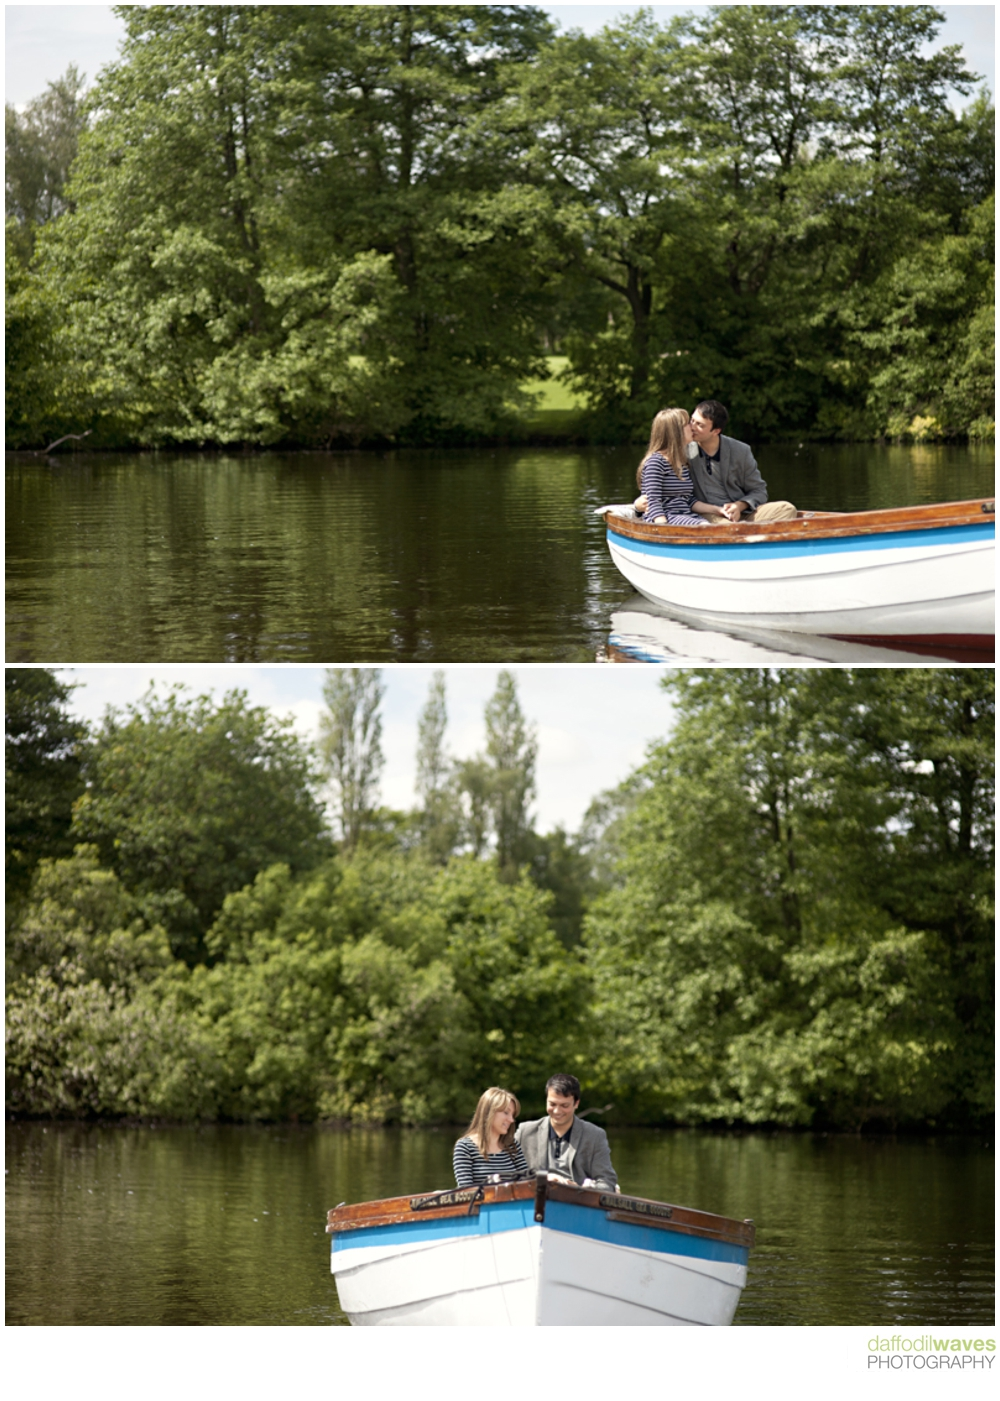 Rowing Boat Engagement Shoot Diana & Omar Daffodil Waves Photography